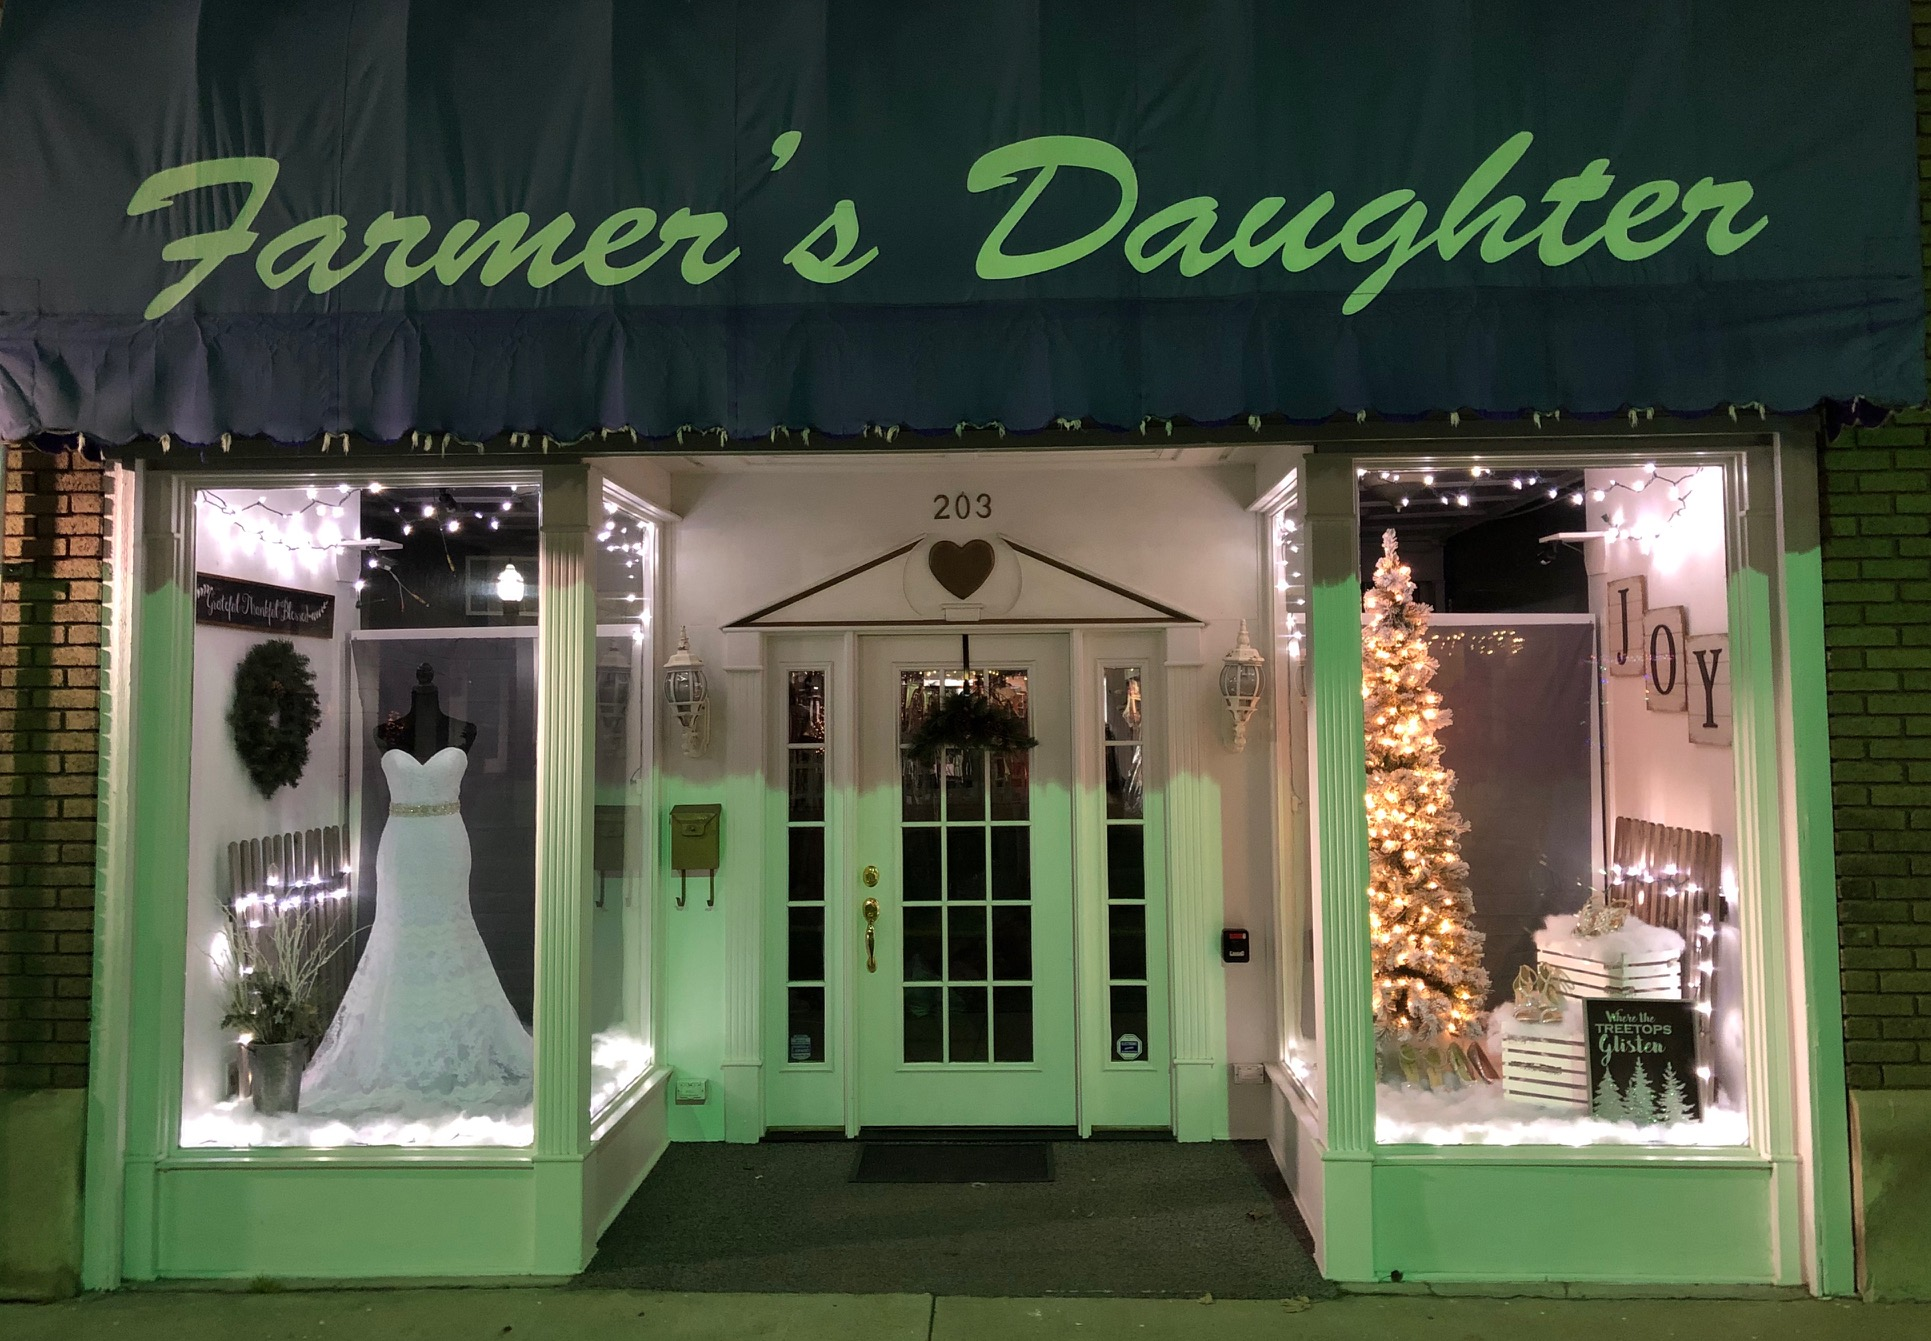 Farmer's Daughter is back! Starting Saturday, December 1, 2018